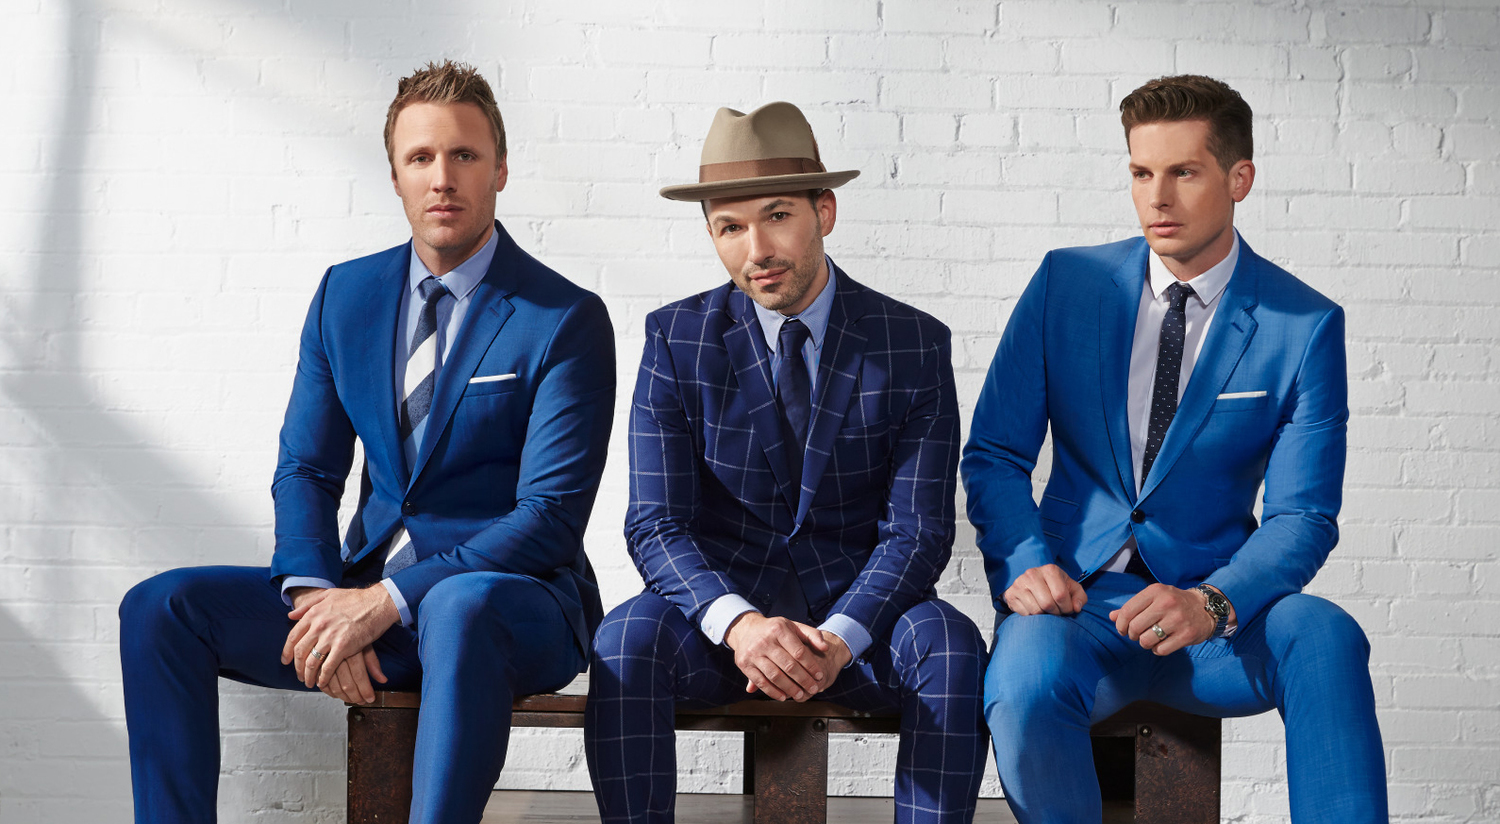 BWW Interview: Fraser Walters Talks About Bringing THE TENORS' A-Game to Durham for Carolina Theatre Concert